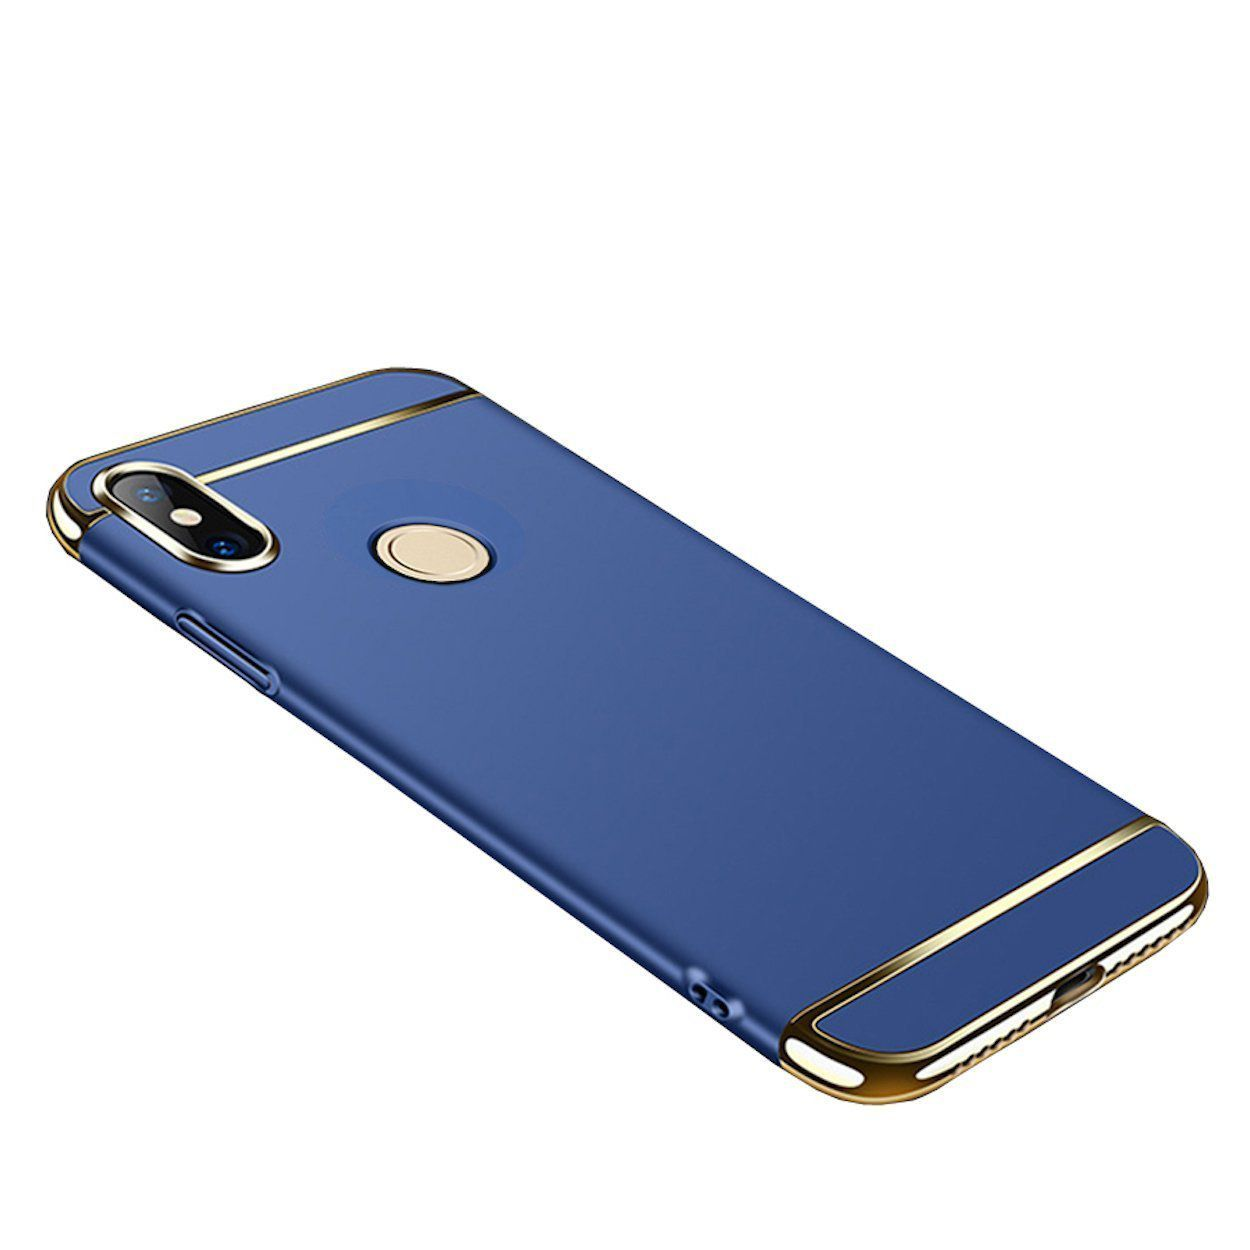 6a94f83da Xiaomi Redmi Note 5 Pro Shock Proof Case Avzax - Blue - Plain Back Covers  Online at Low Prices